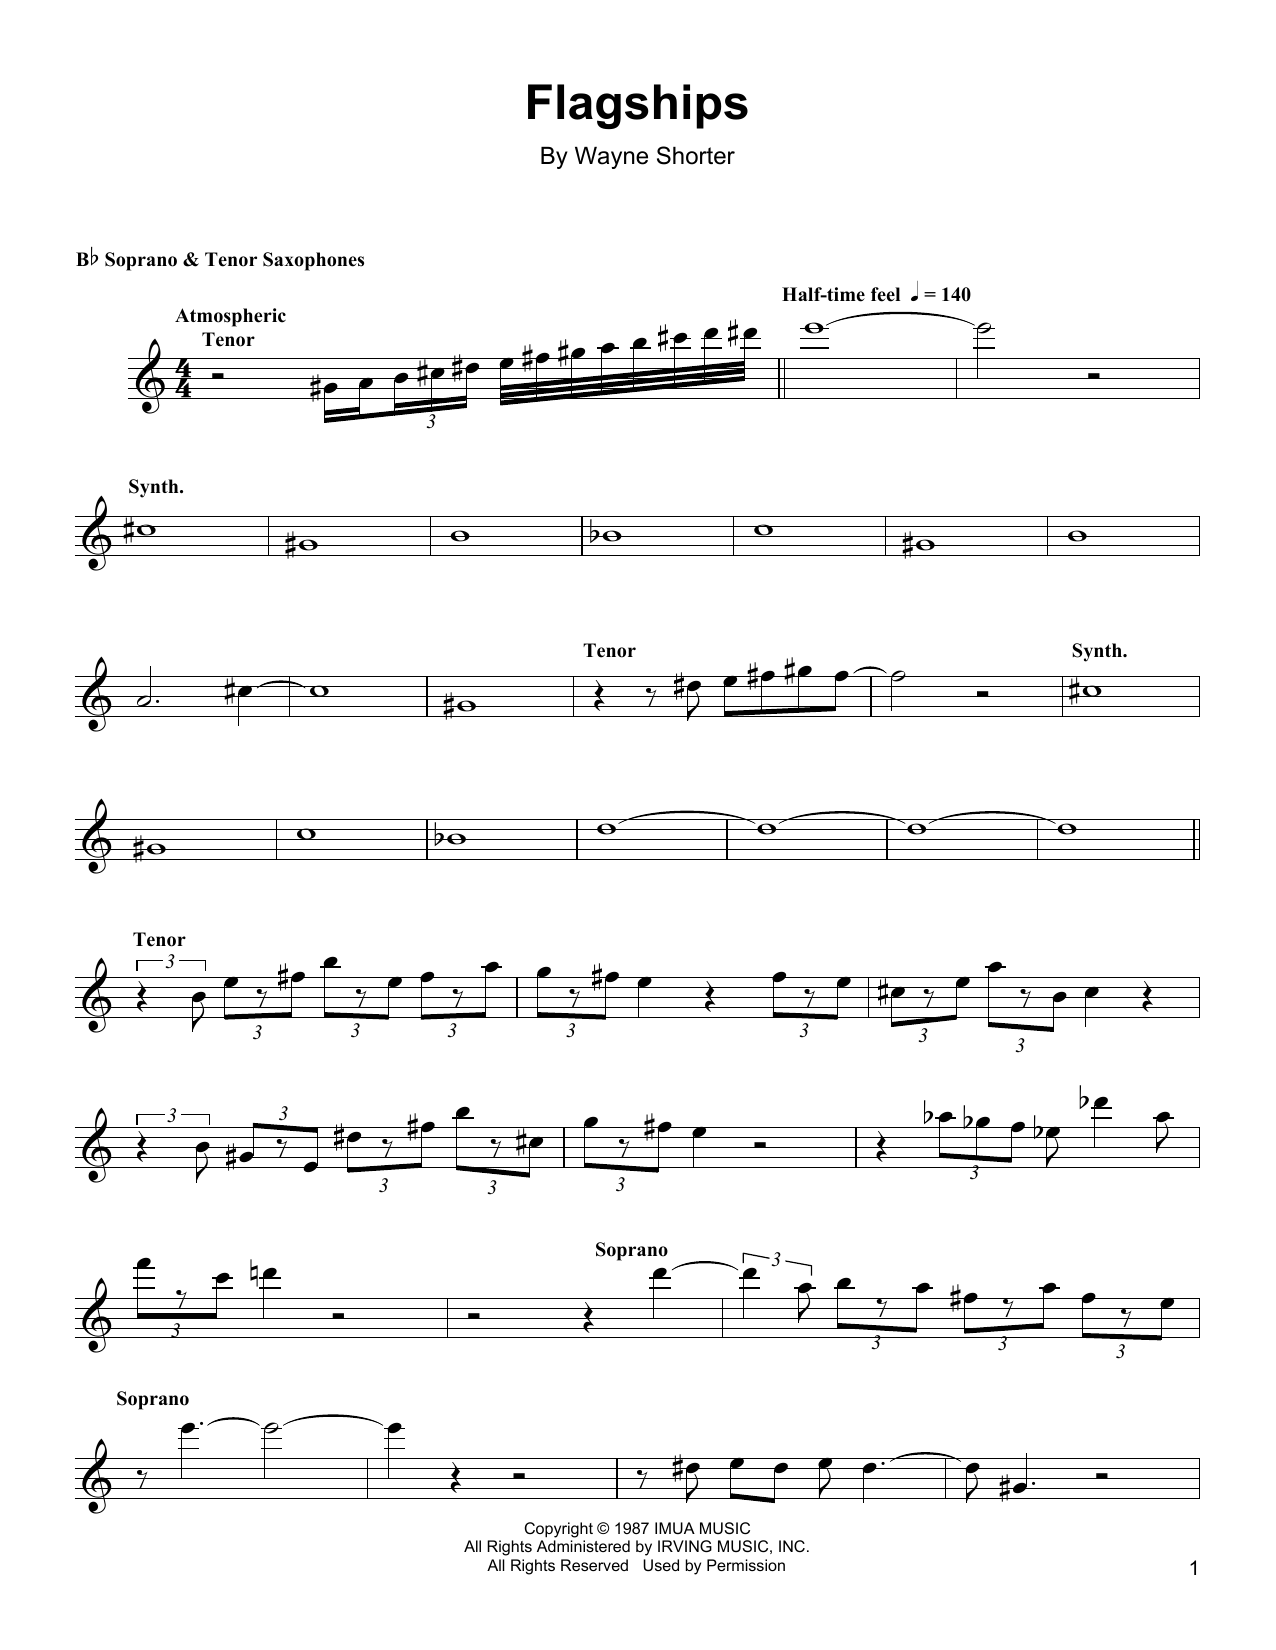 Flagships Sheet Music